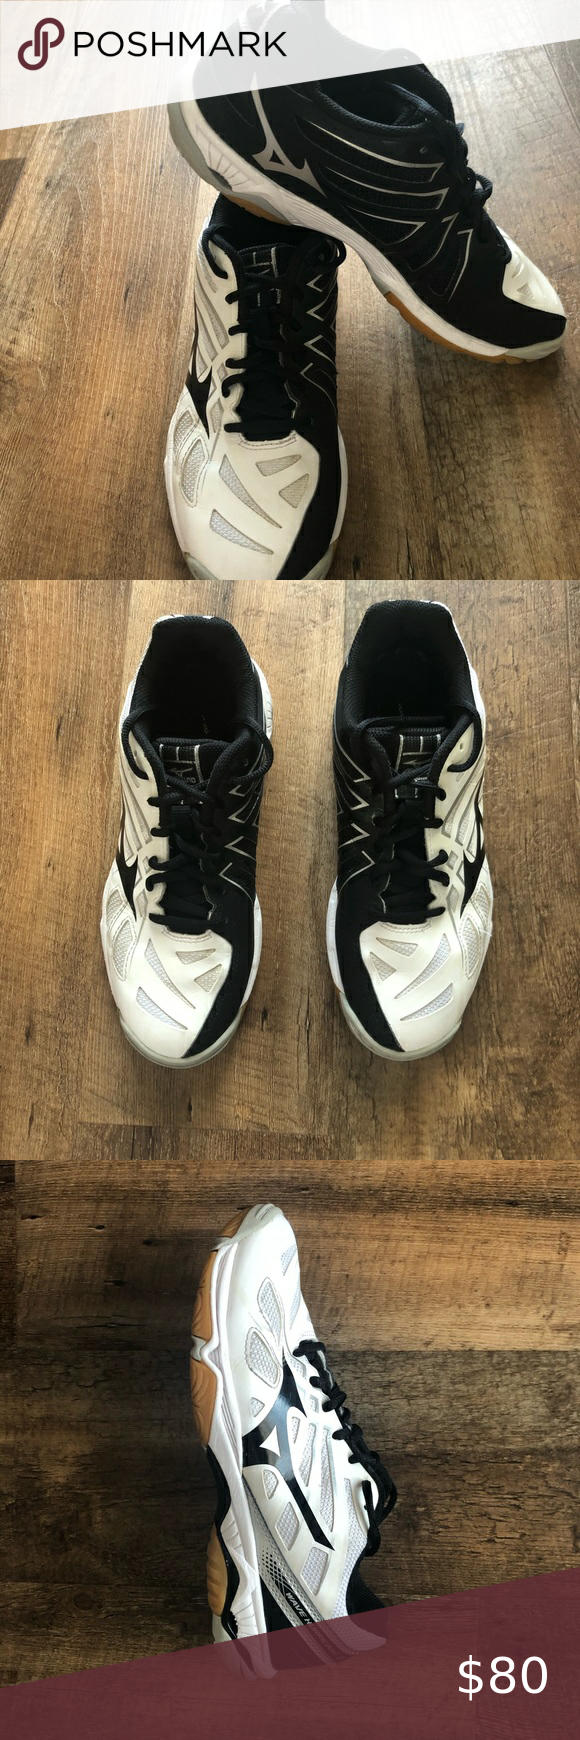 Mizuno Wave Volleyball Shoes Like New In 2020 Volleyball Shoes Mizuno Shoes Shoes